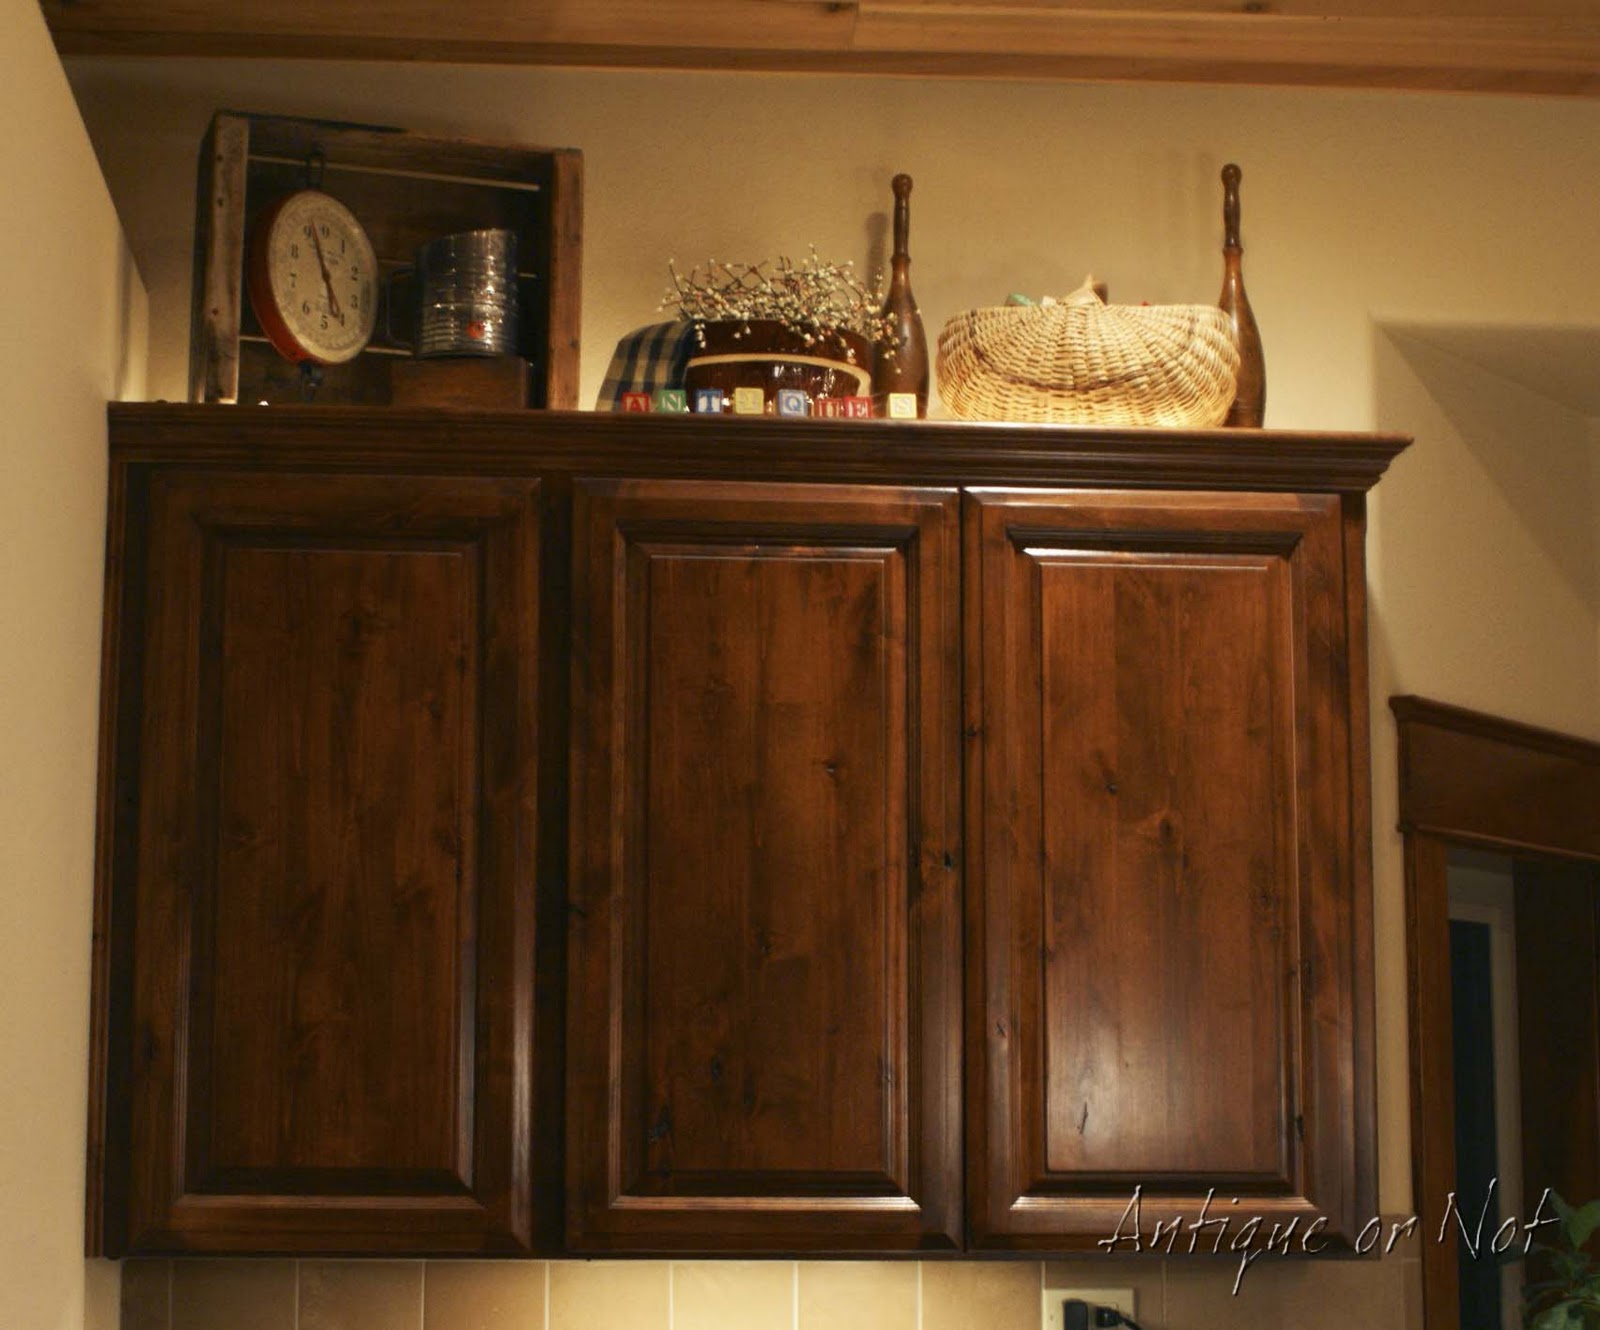 Antique Or Not: Decorating Above Your Cabinets